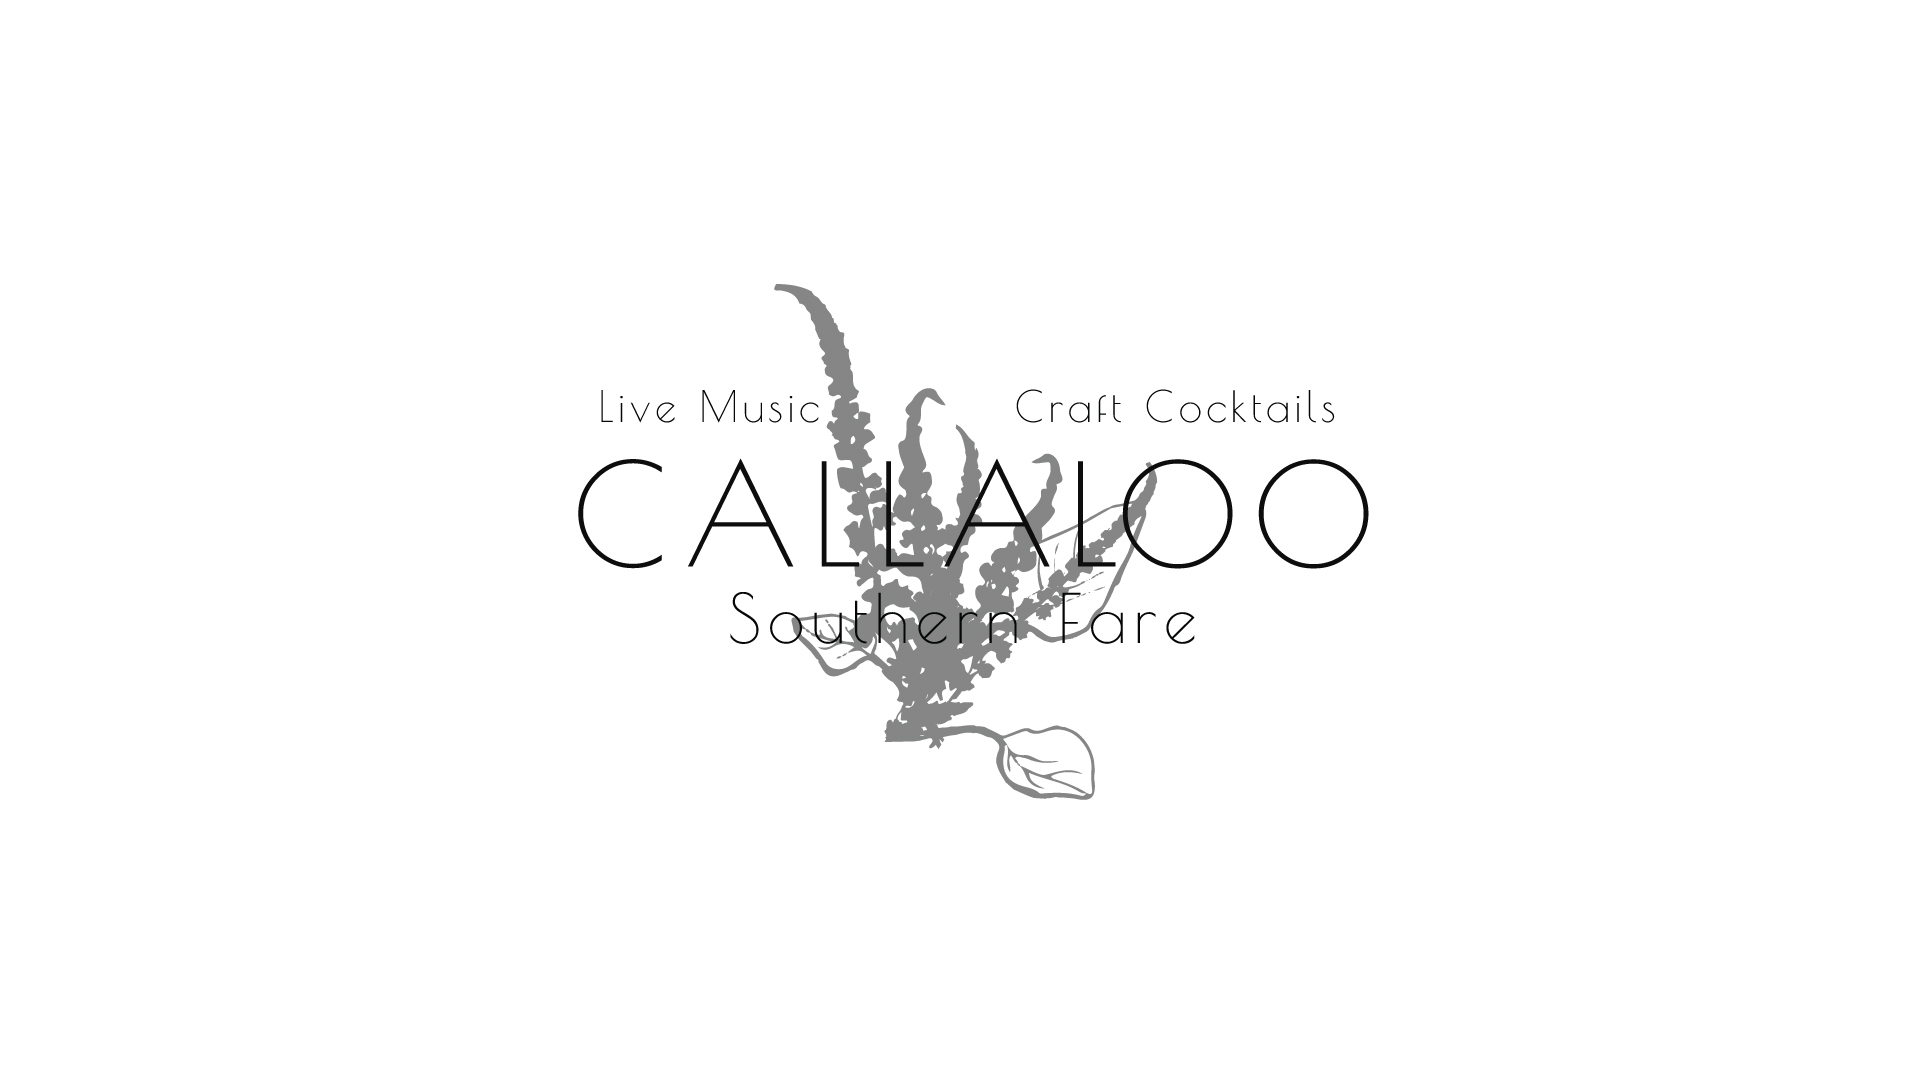 Callaloo Set to Open In February 2018